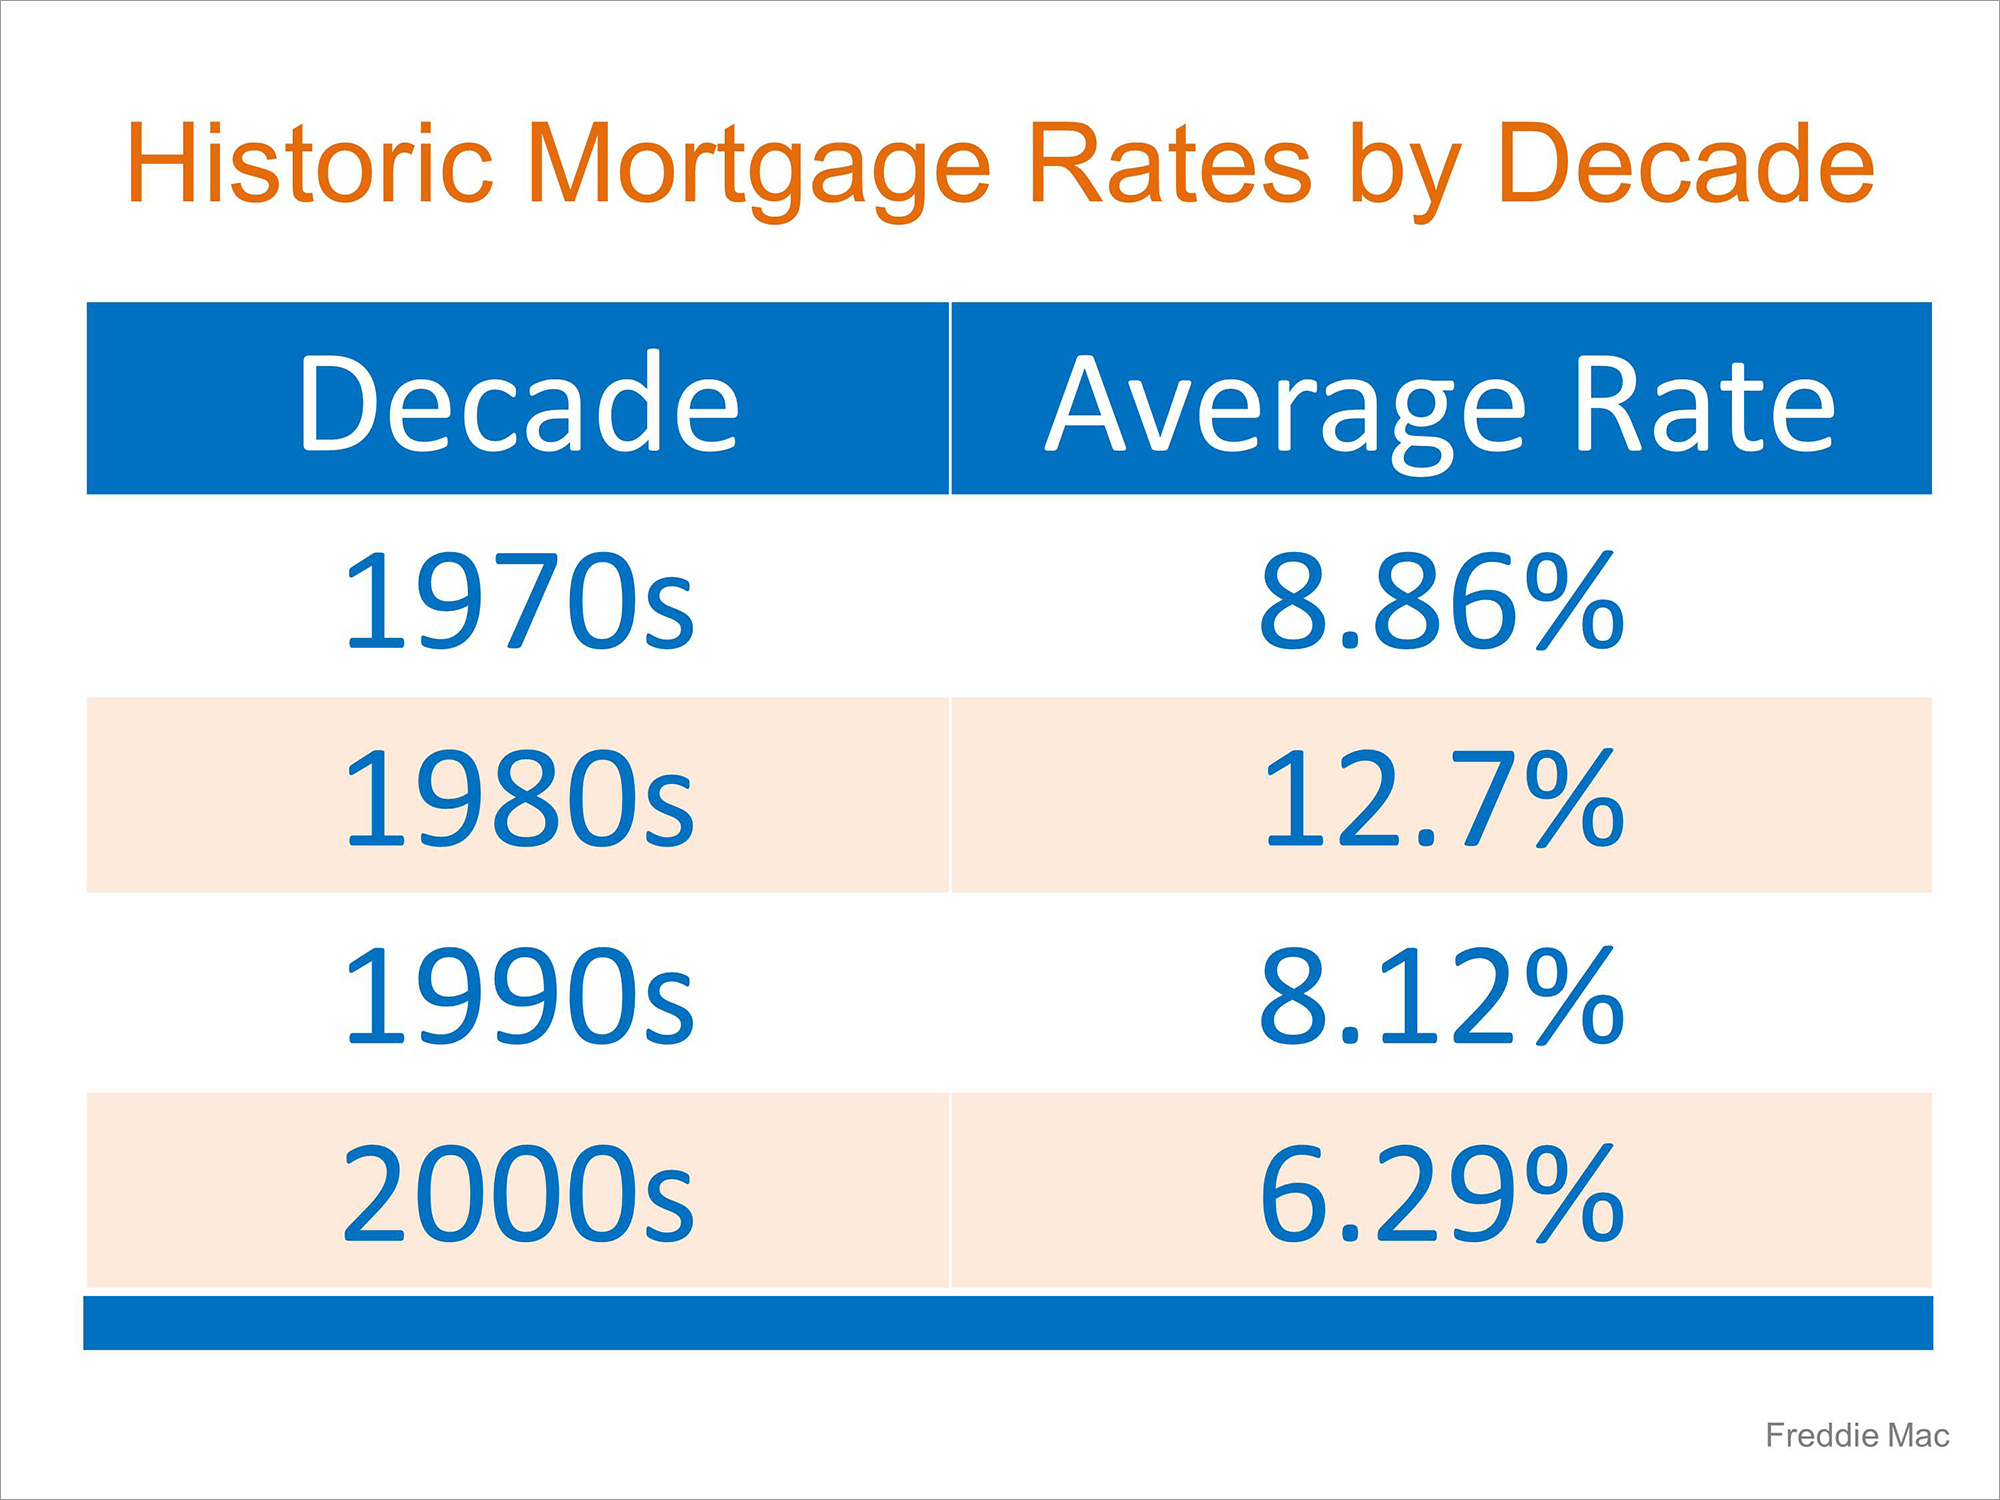 Mortgage Interest Rates Just Went Up... Should I Wait to Buy? | MyKCM